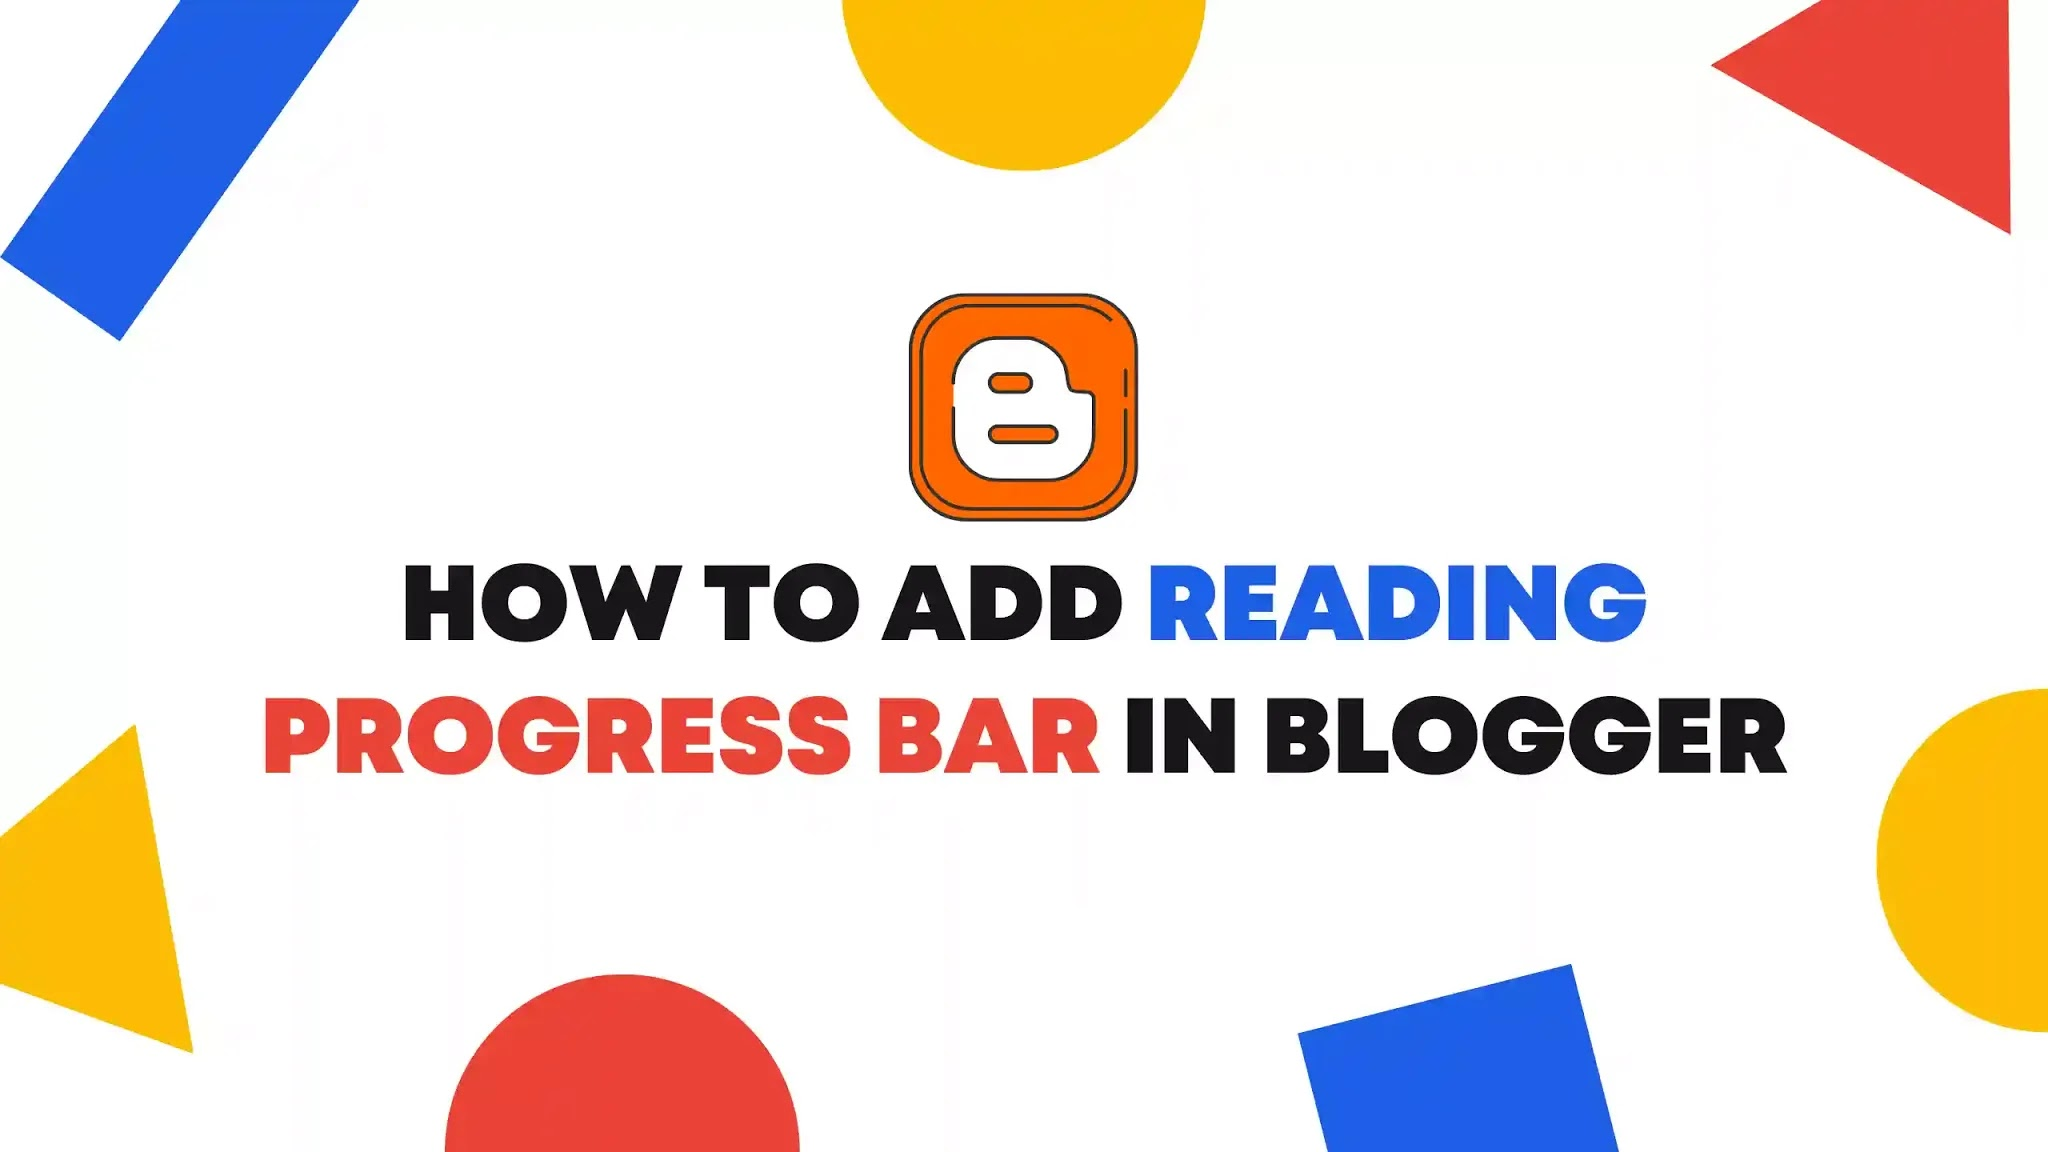 How to Add Reading Progress Bar in Blogger: Step-by-Step Beginner's Guide